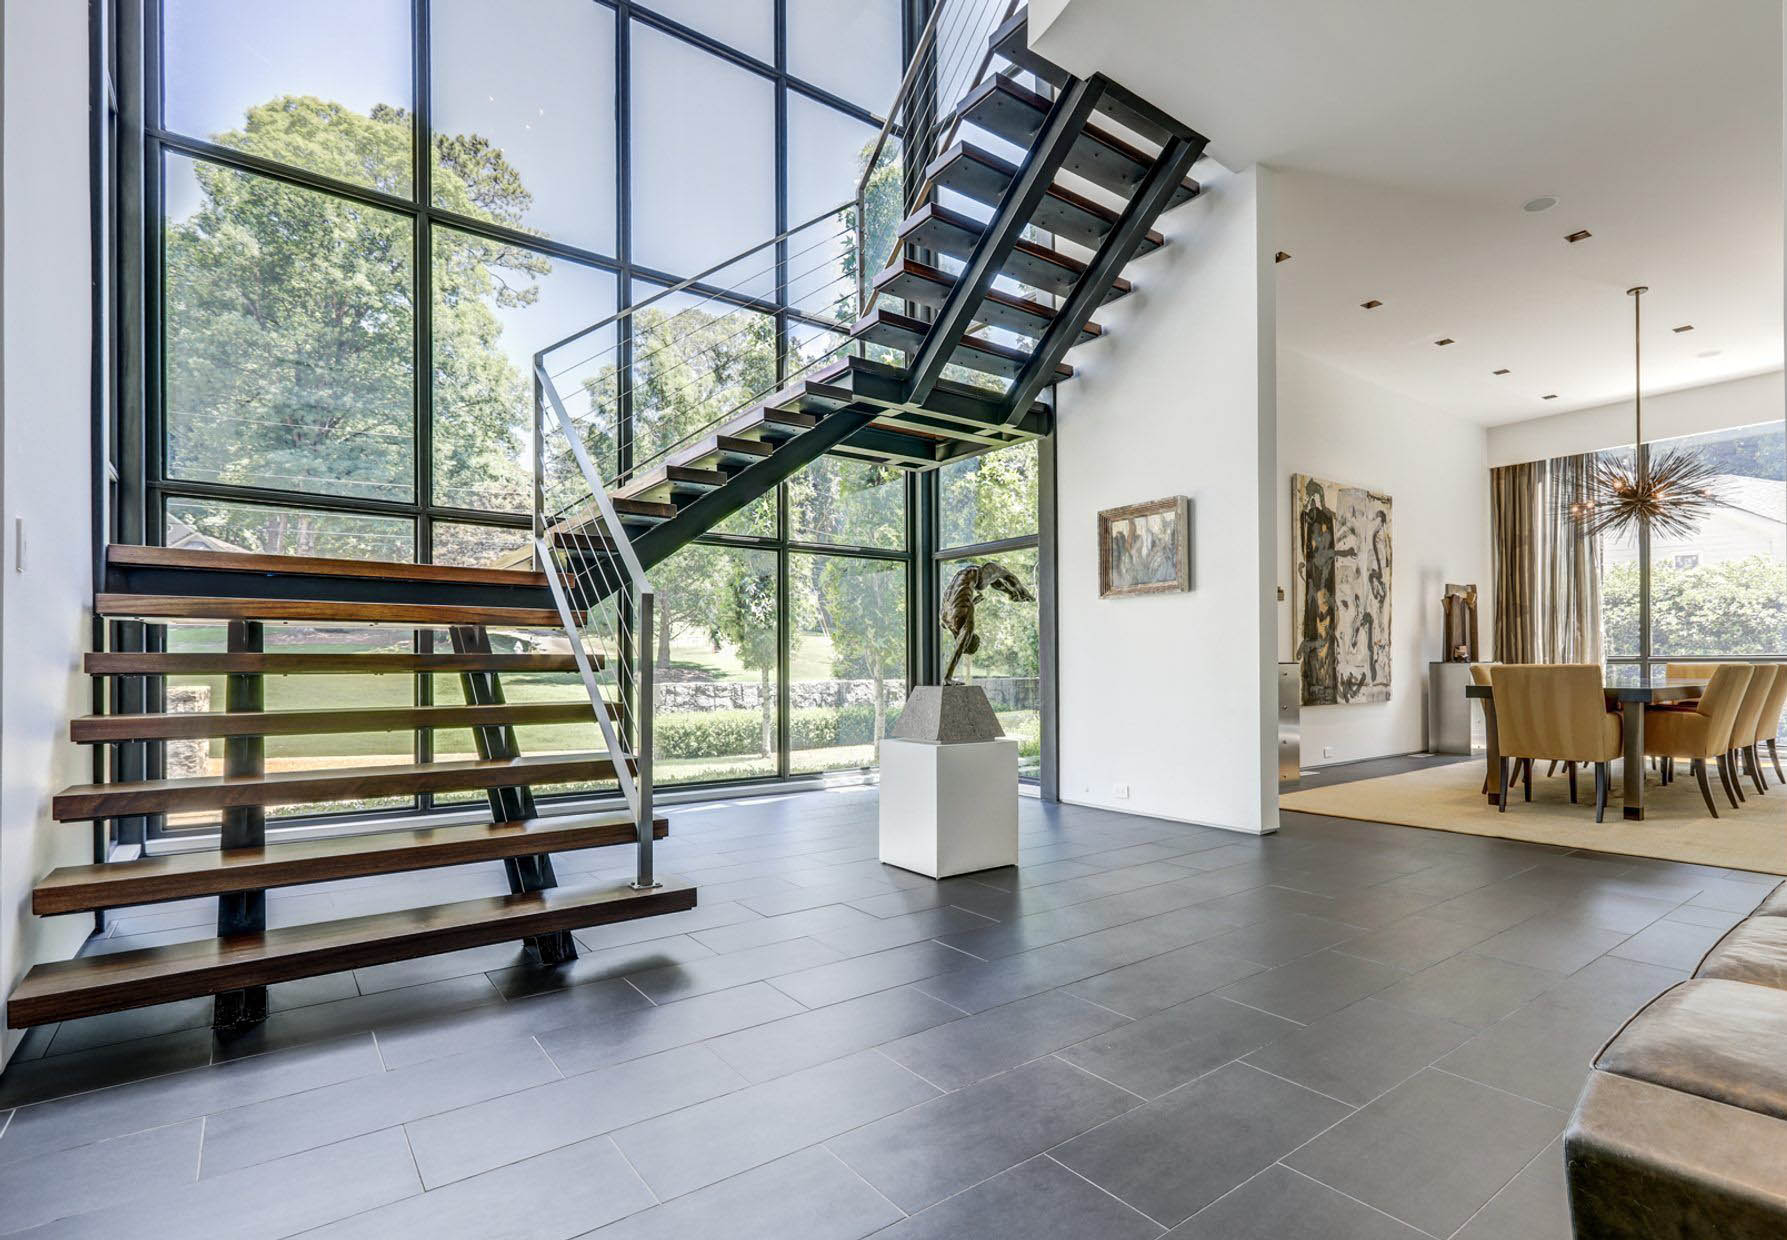 Modern metal and wood winding staircase with metal railings in front of a stunning 2 story glass wall.